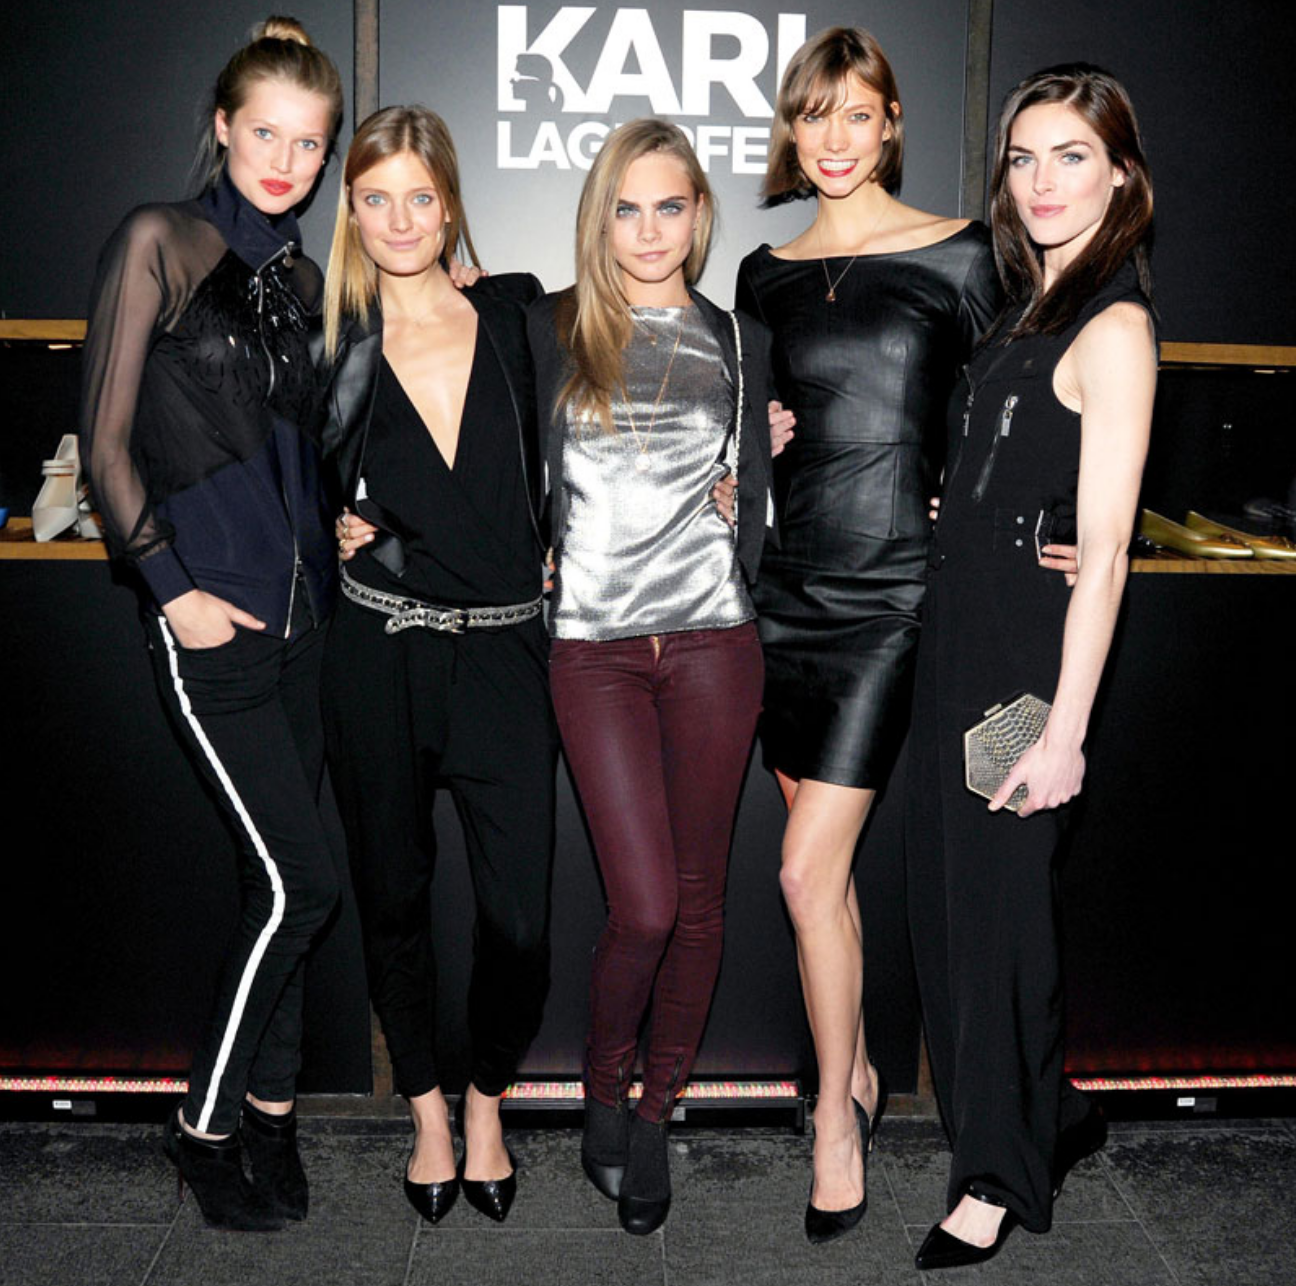 Melissa Shoes x Karl Lagerfeld Launch